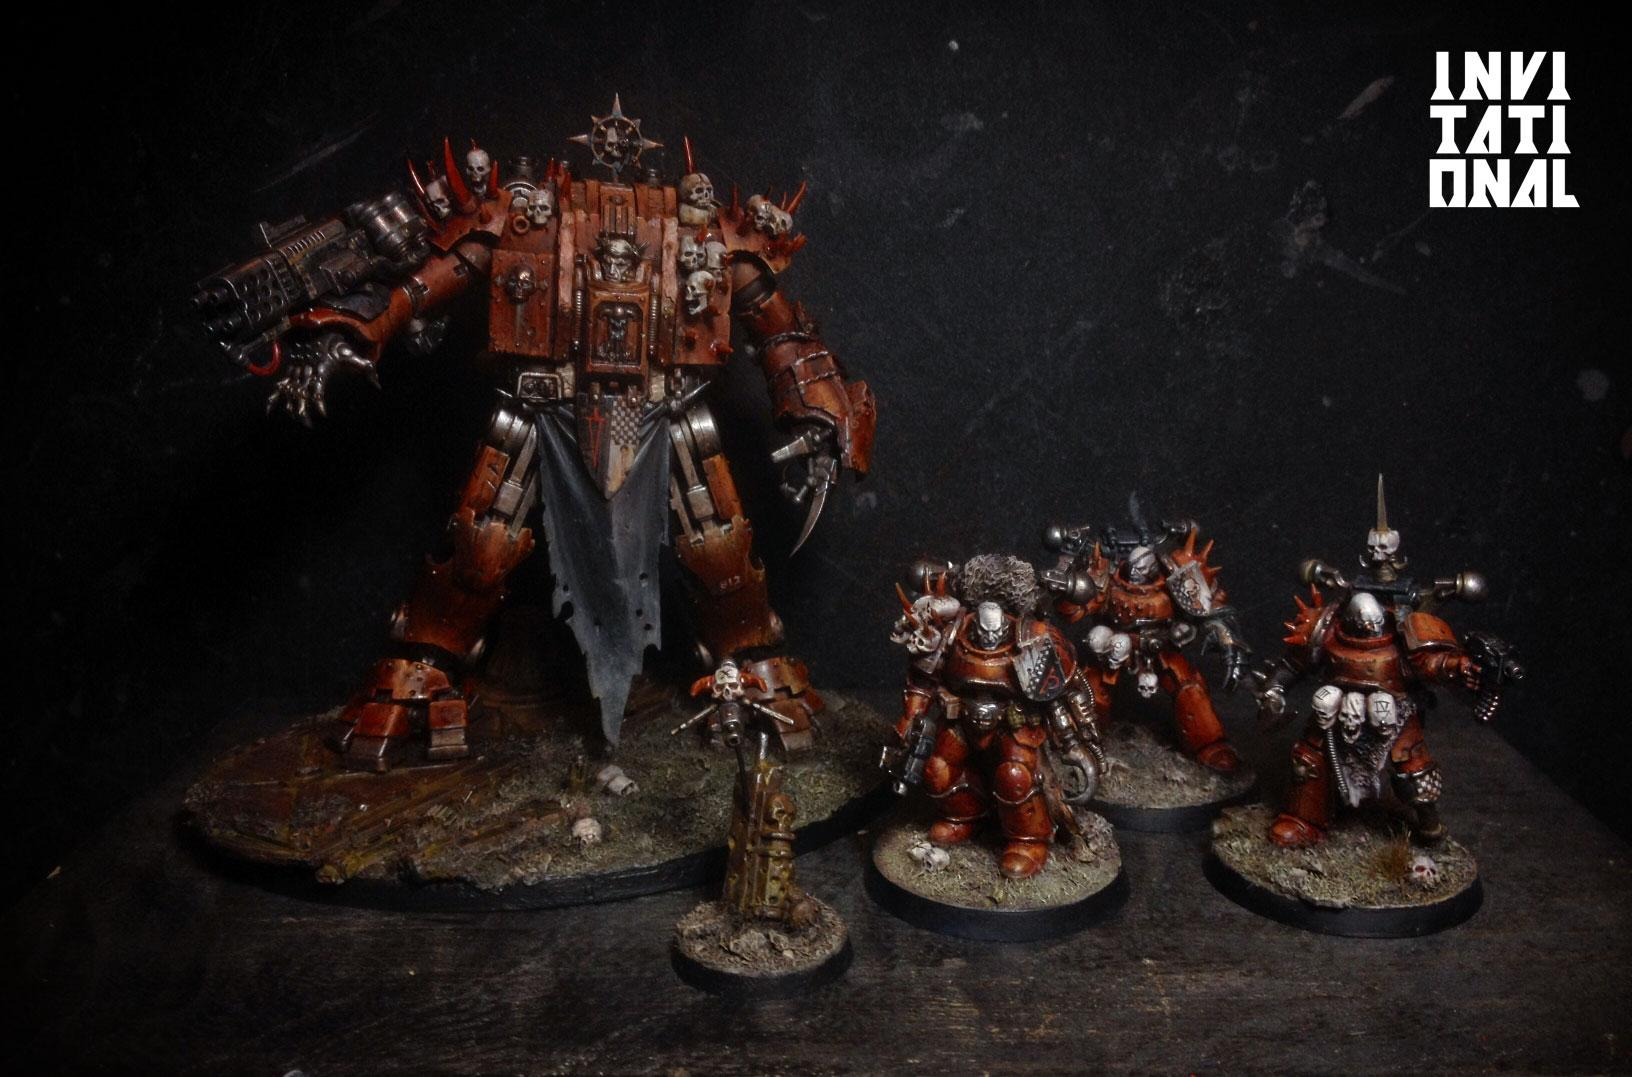 Art Scale, Chaos Space Marines, Dreadnought, Red Corsairs, Space Marines, True Scale